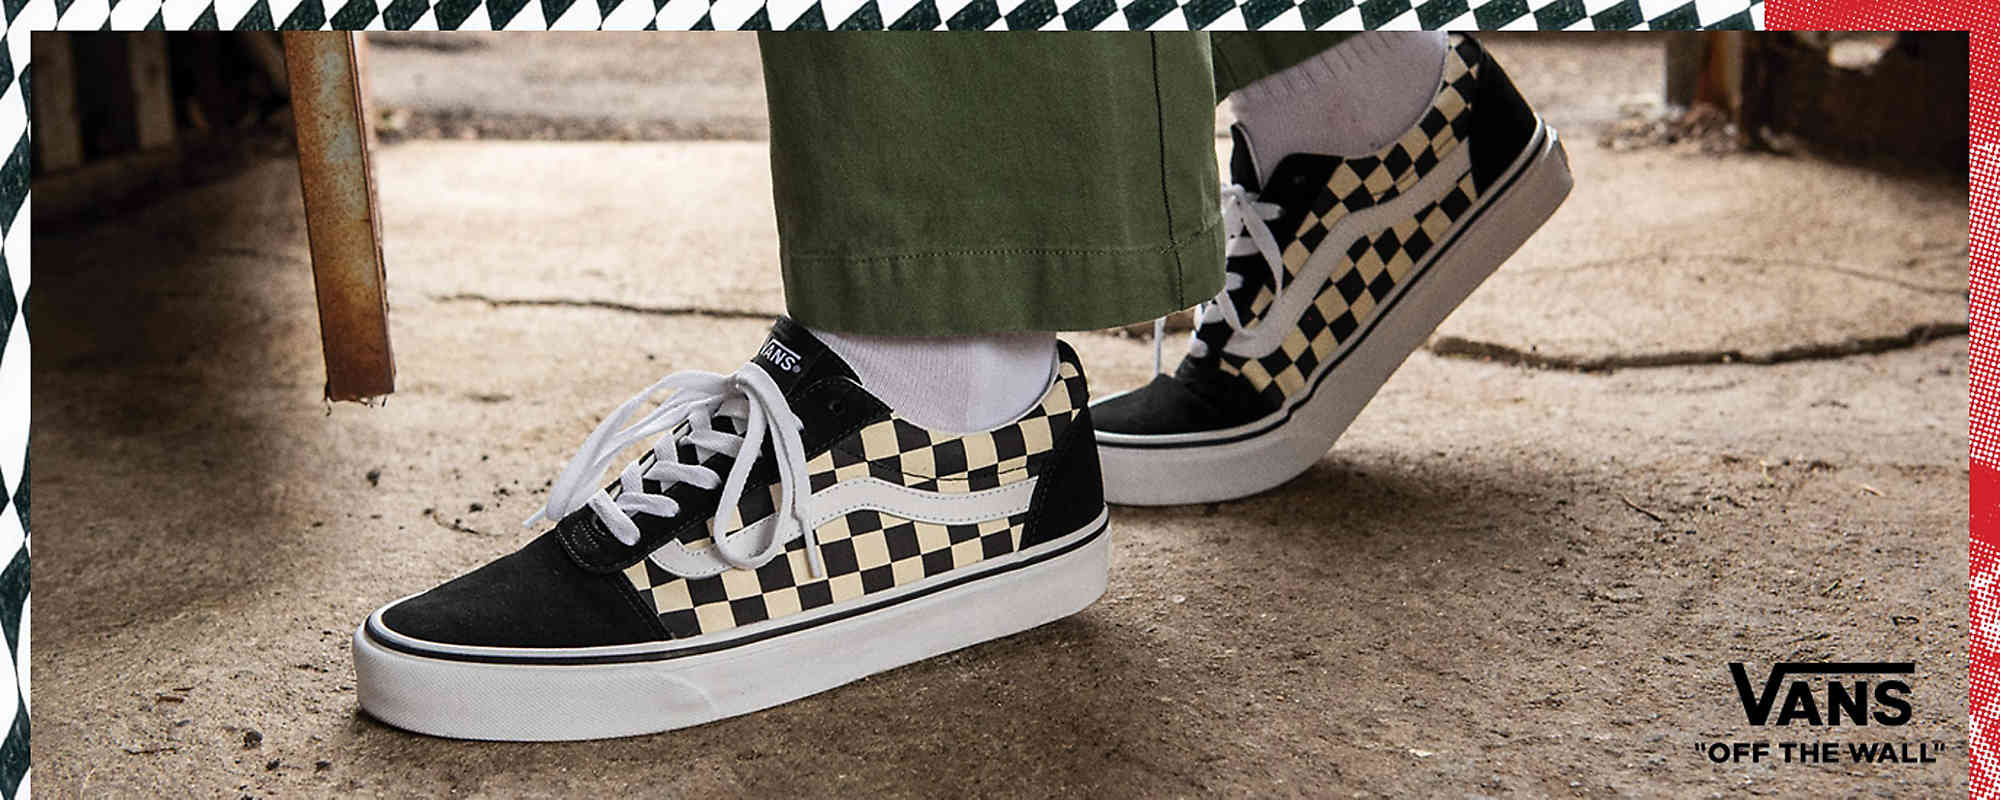 Vans Shoes, Sneakers, High Tops & Skateboard Shoes | DSW